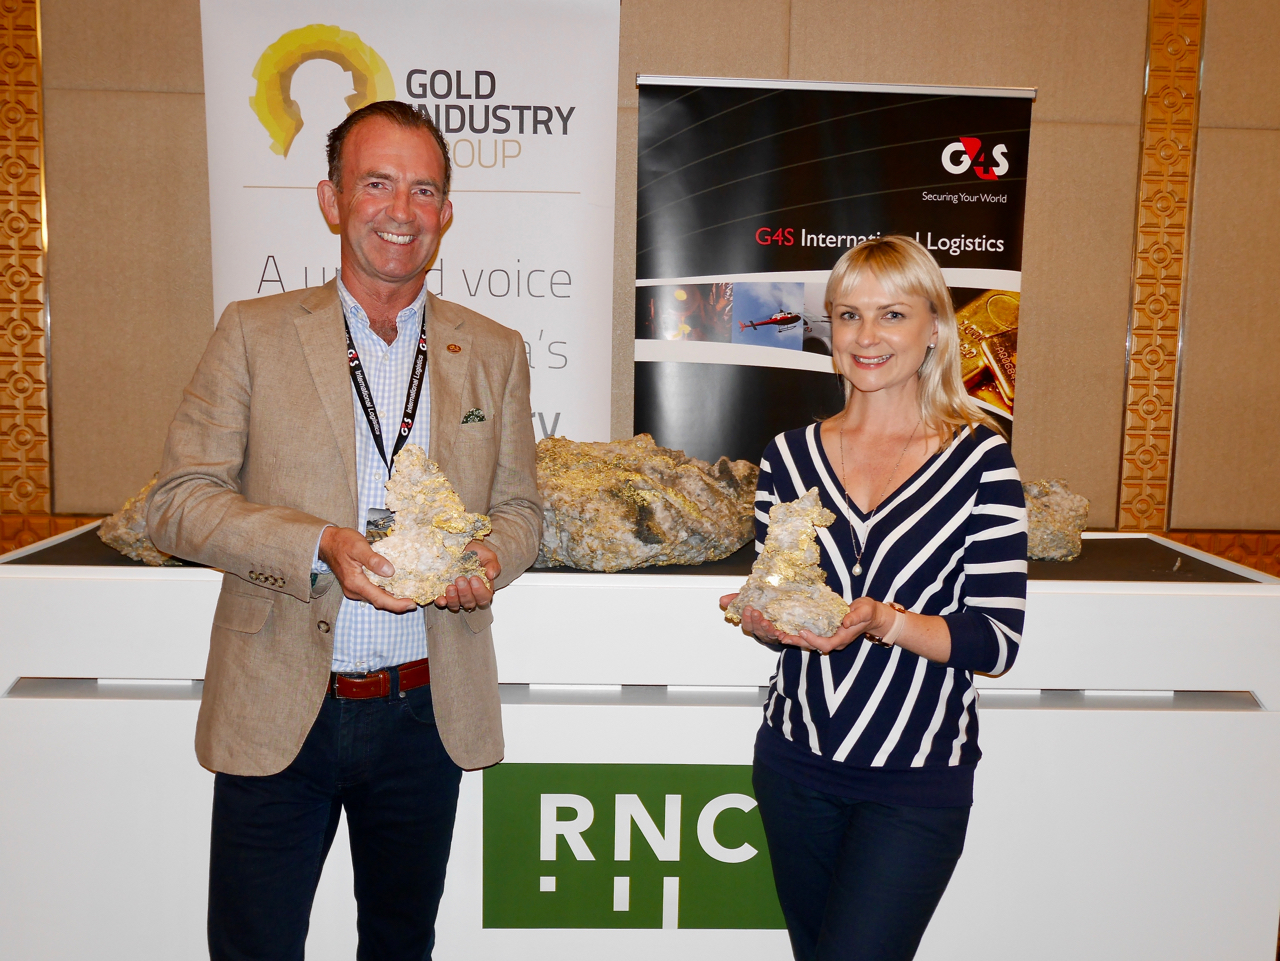 GIG Executive Officer Rebecca Johnston goes behind the scenes with G4Si Managing Director Julian Haskard at the Precious Metals Investment Symposium